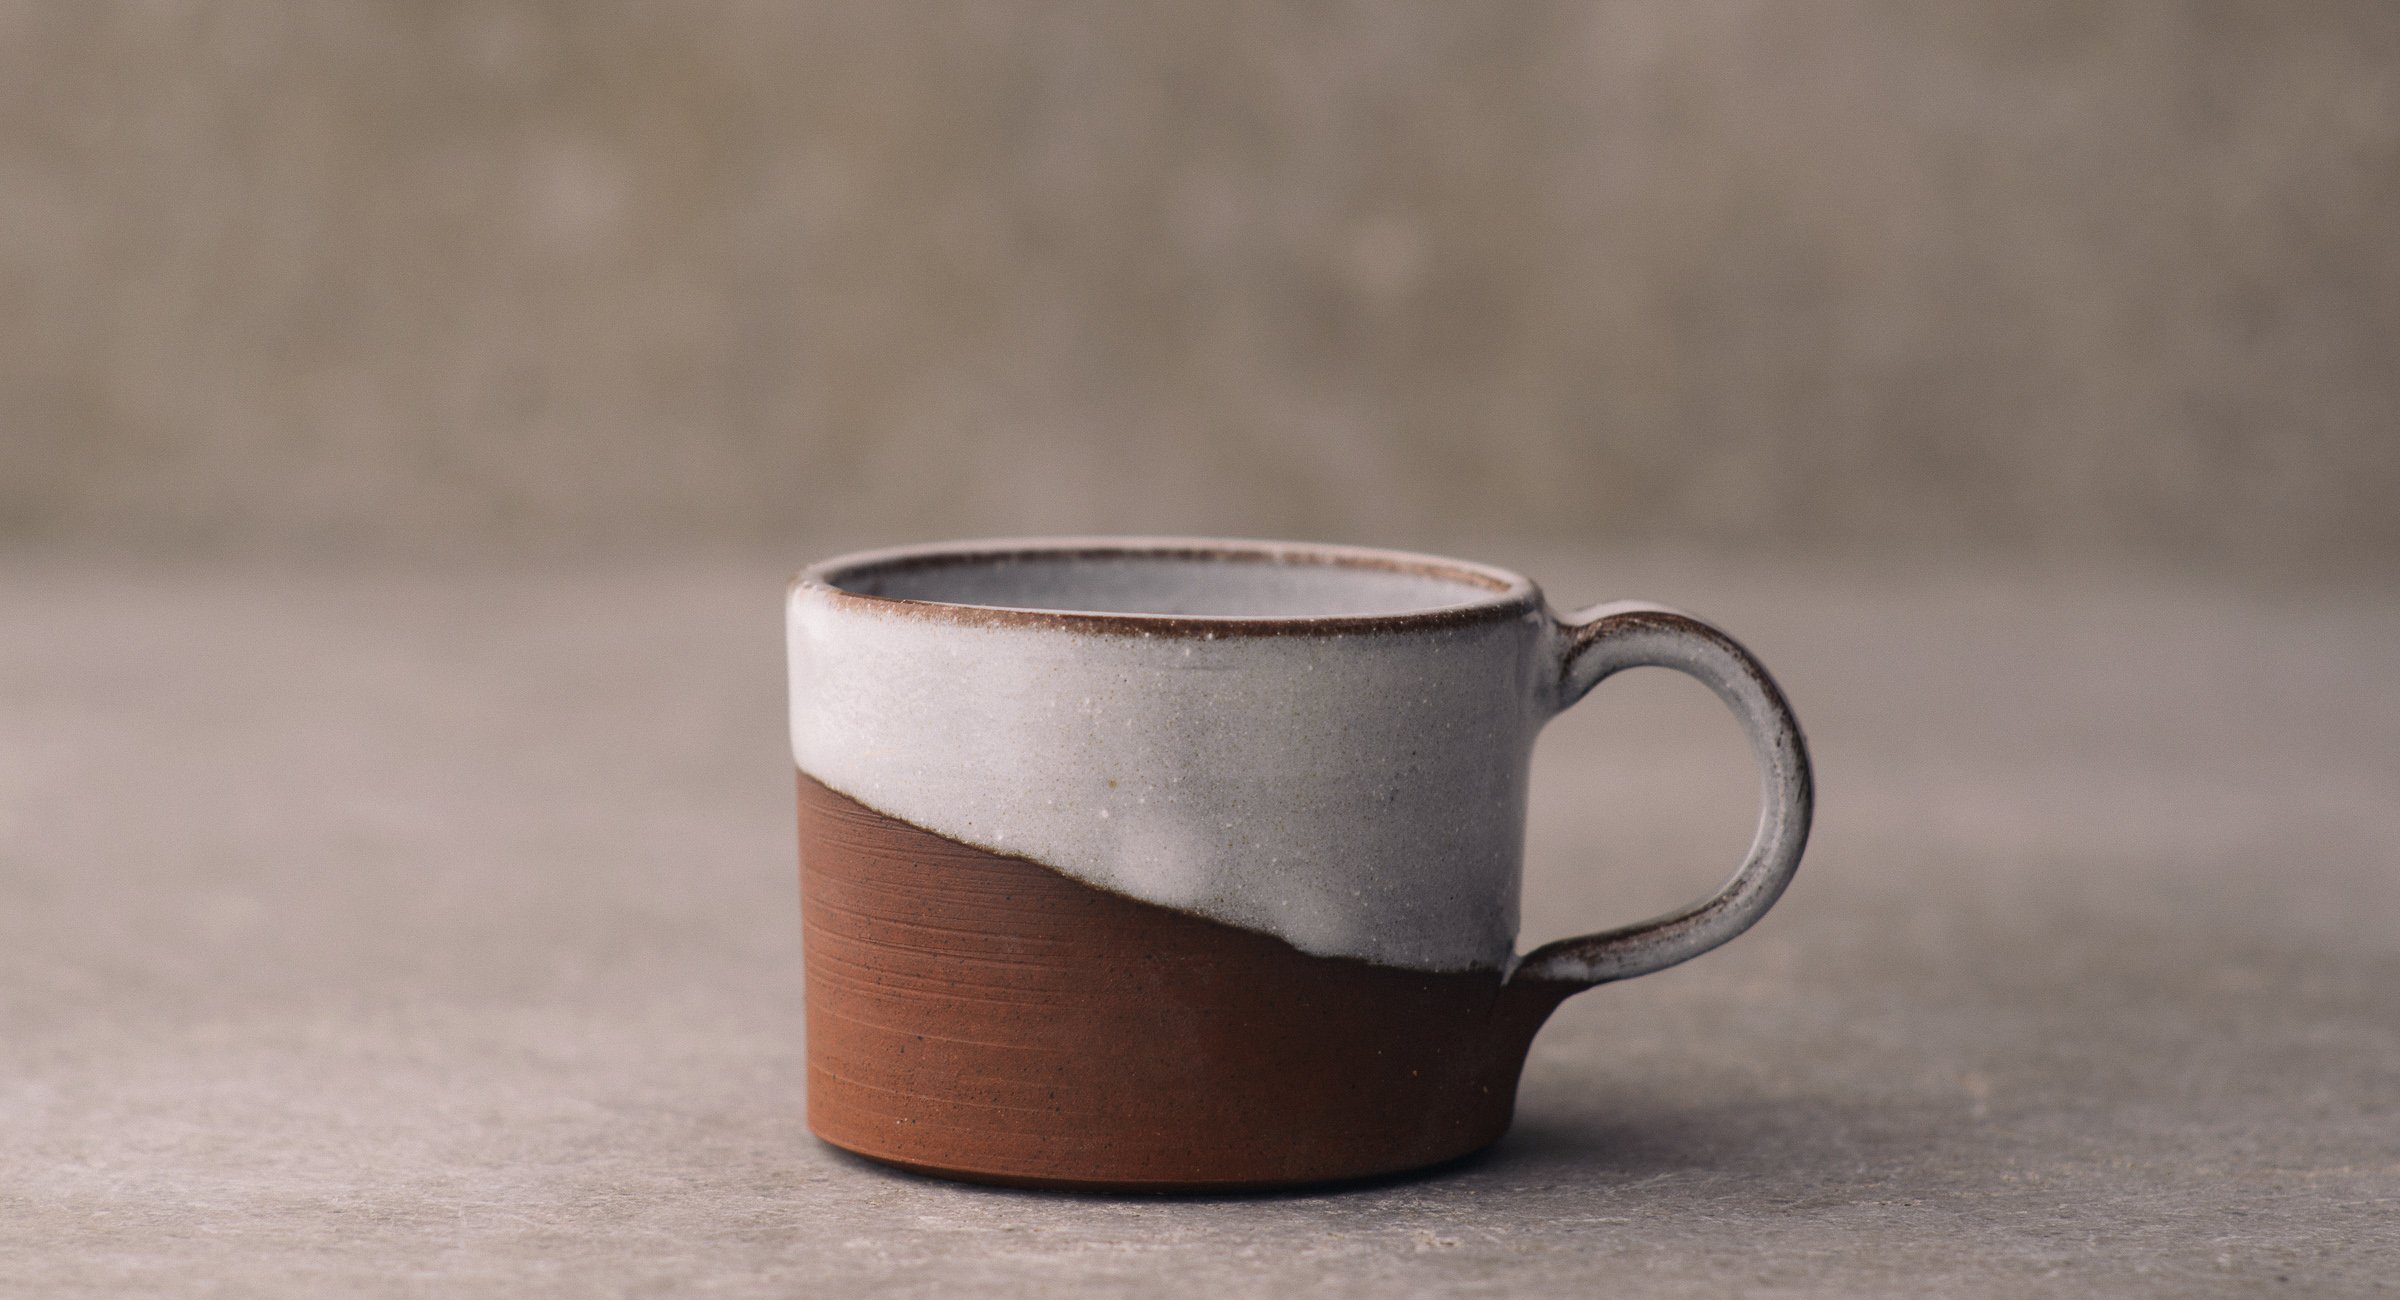 New Kitchenware Collection from DeVOL